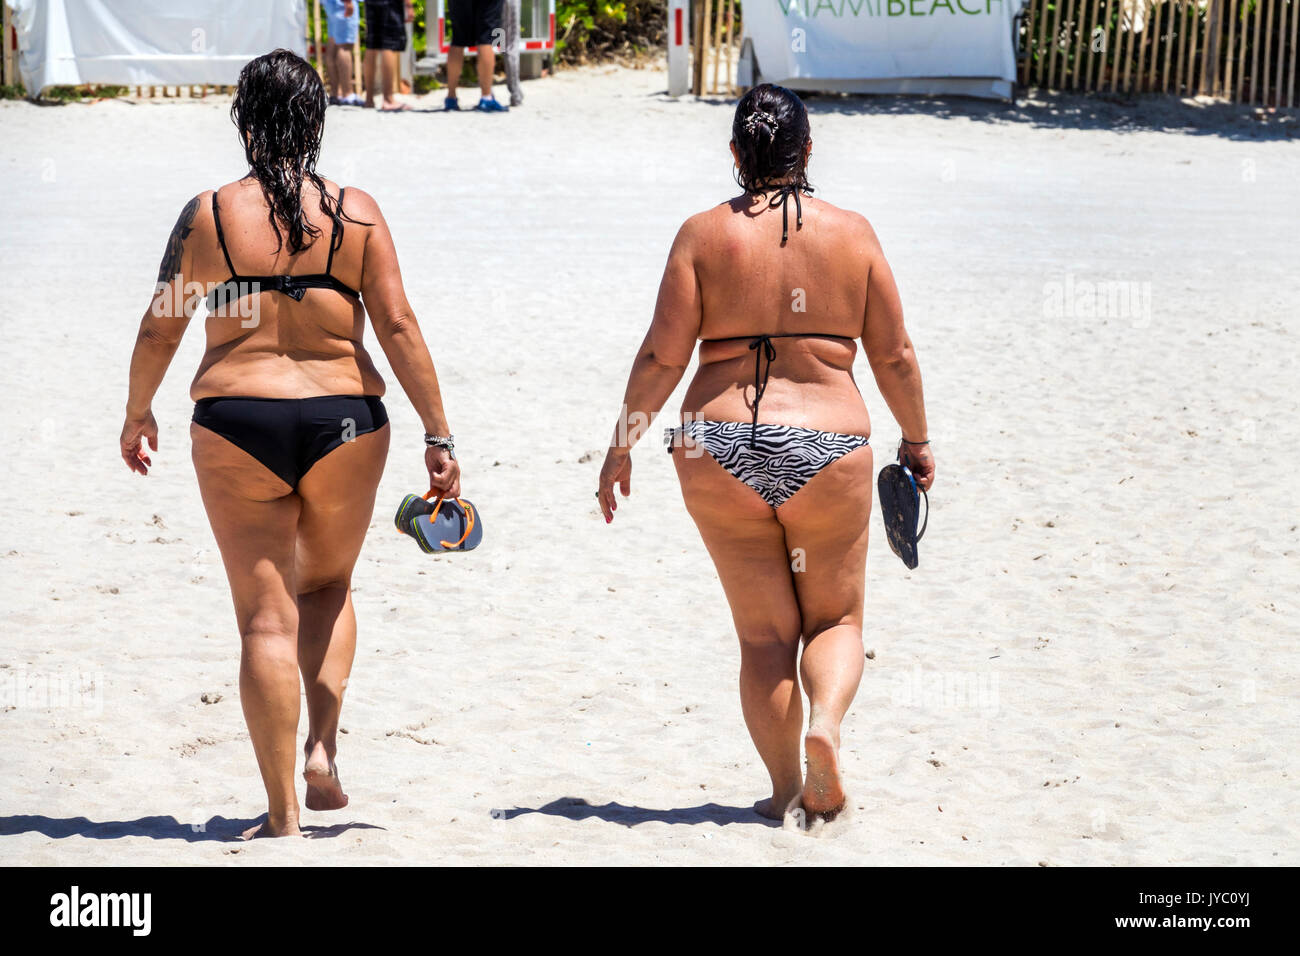 bbw bikini walking cellulite